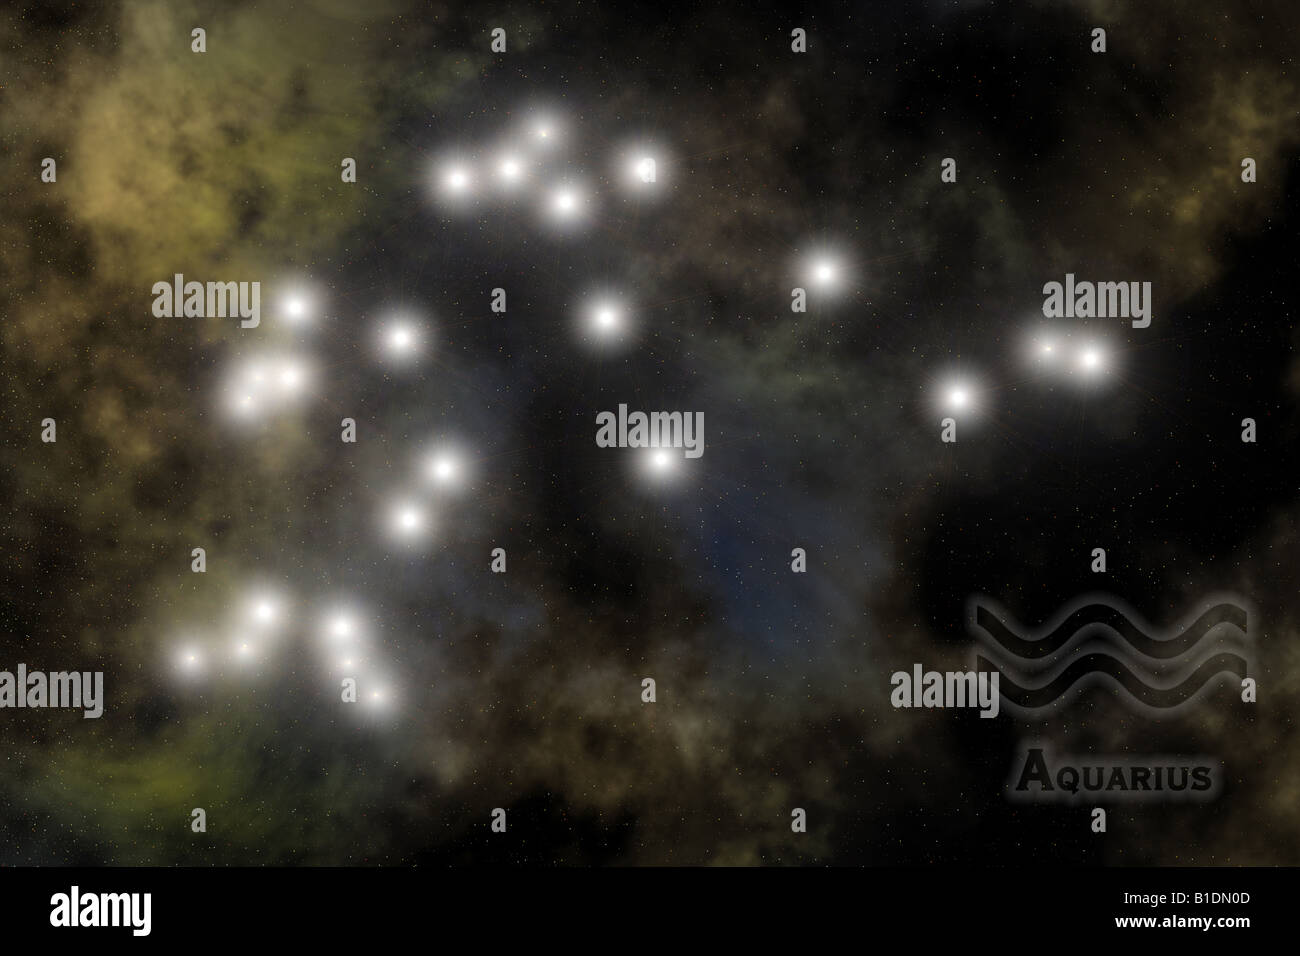 Zodiac - Aquarius constellation, with sign and name of Zodiac. Against space galaxy background - Stock Image